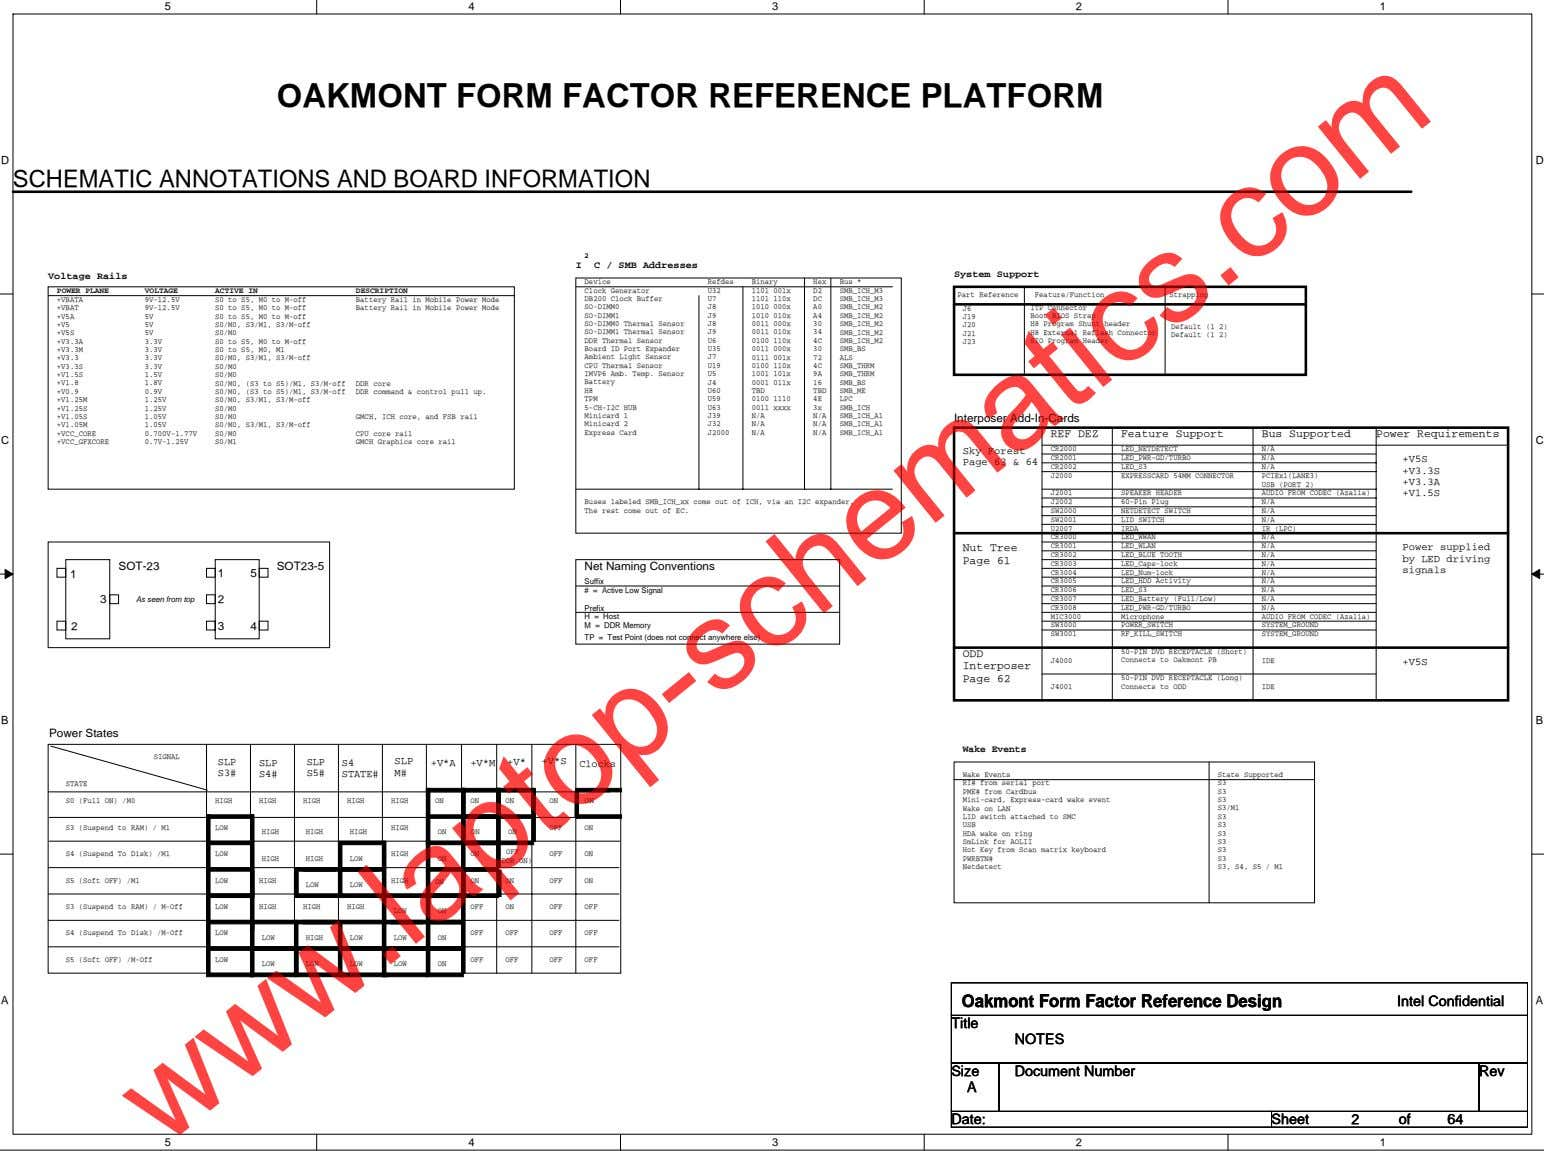 5 4 3 2 1 OAKMONT FORM FACTOR REFERENCE PLATFORM D D SCHEMATIC ANNOTATIONS AND